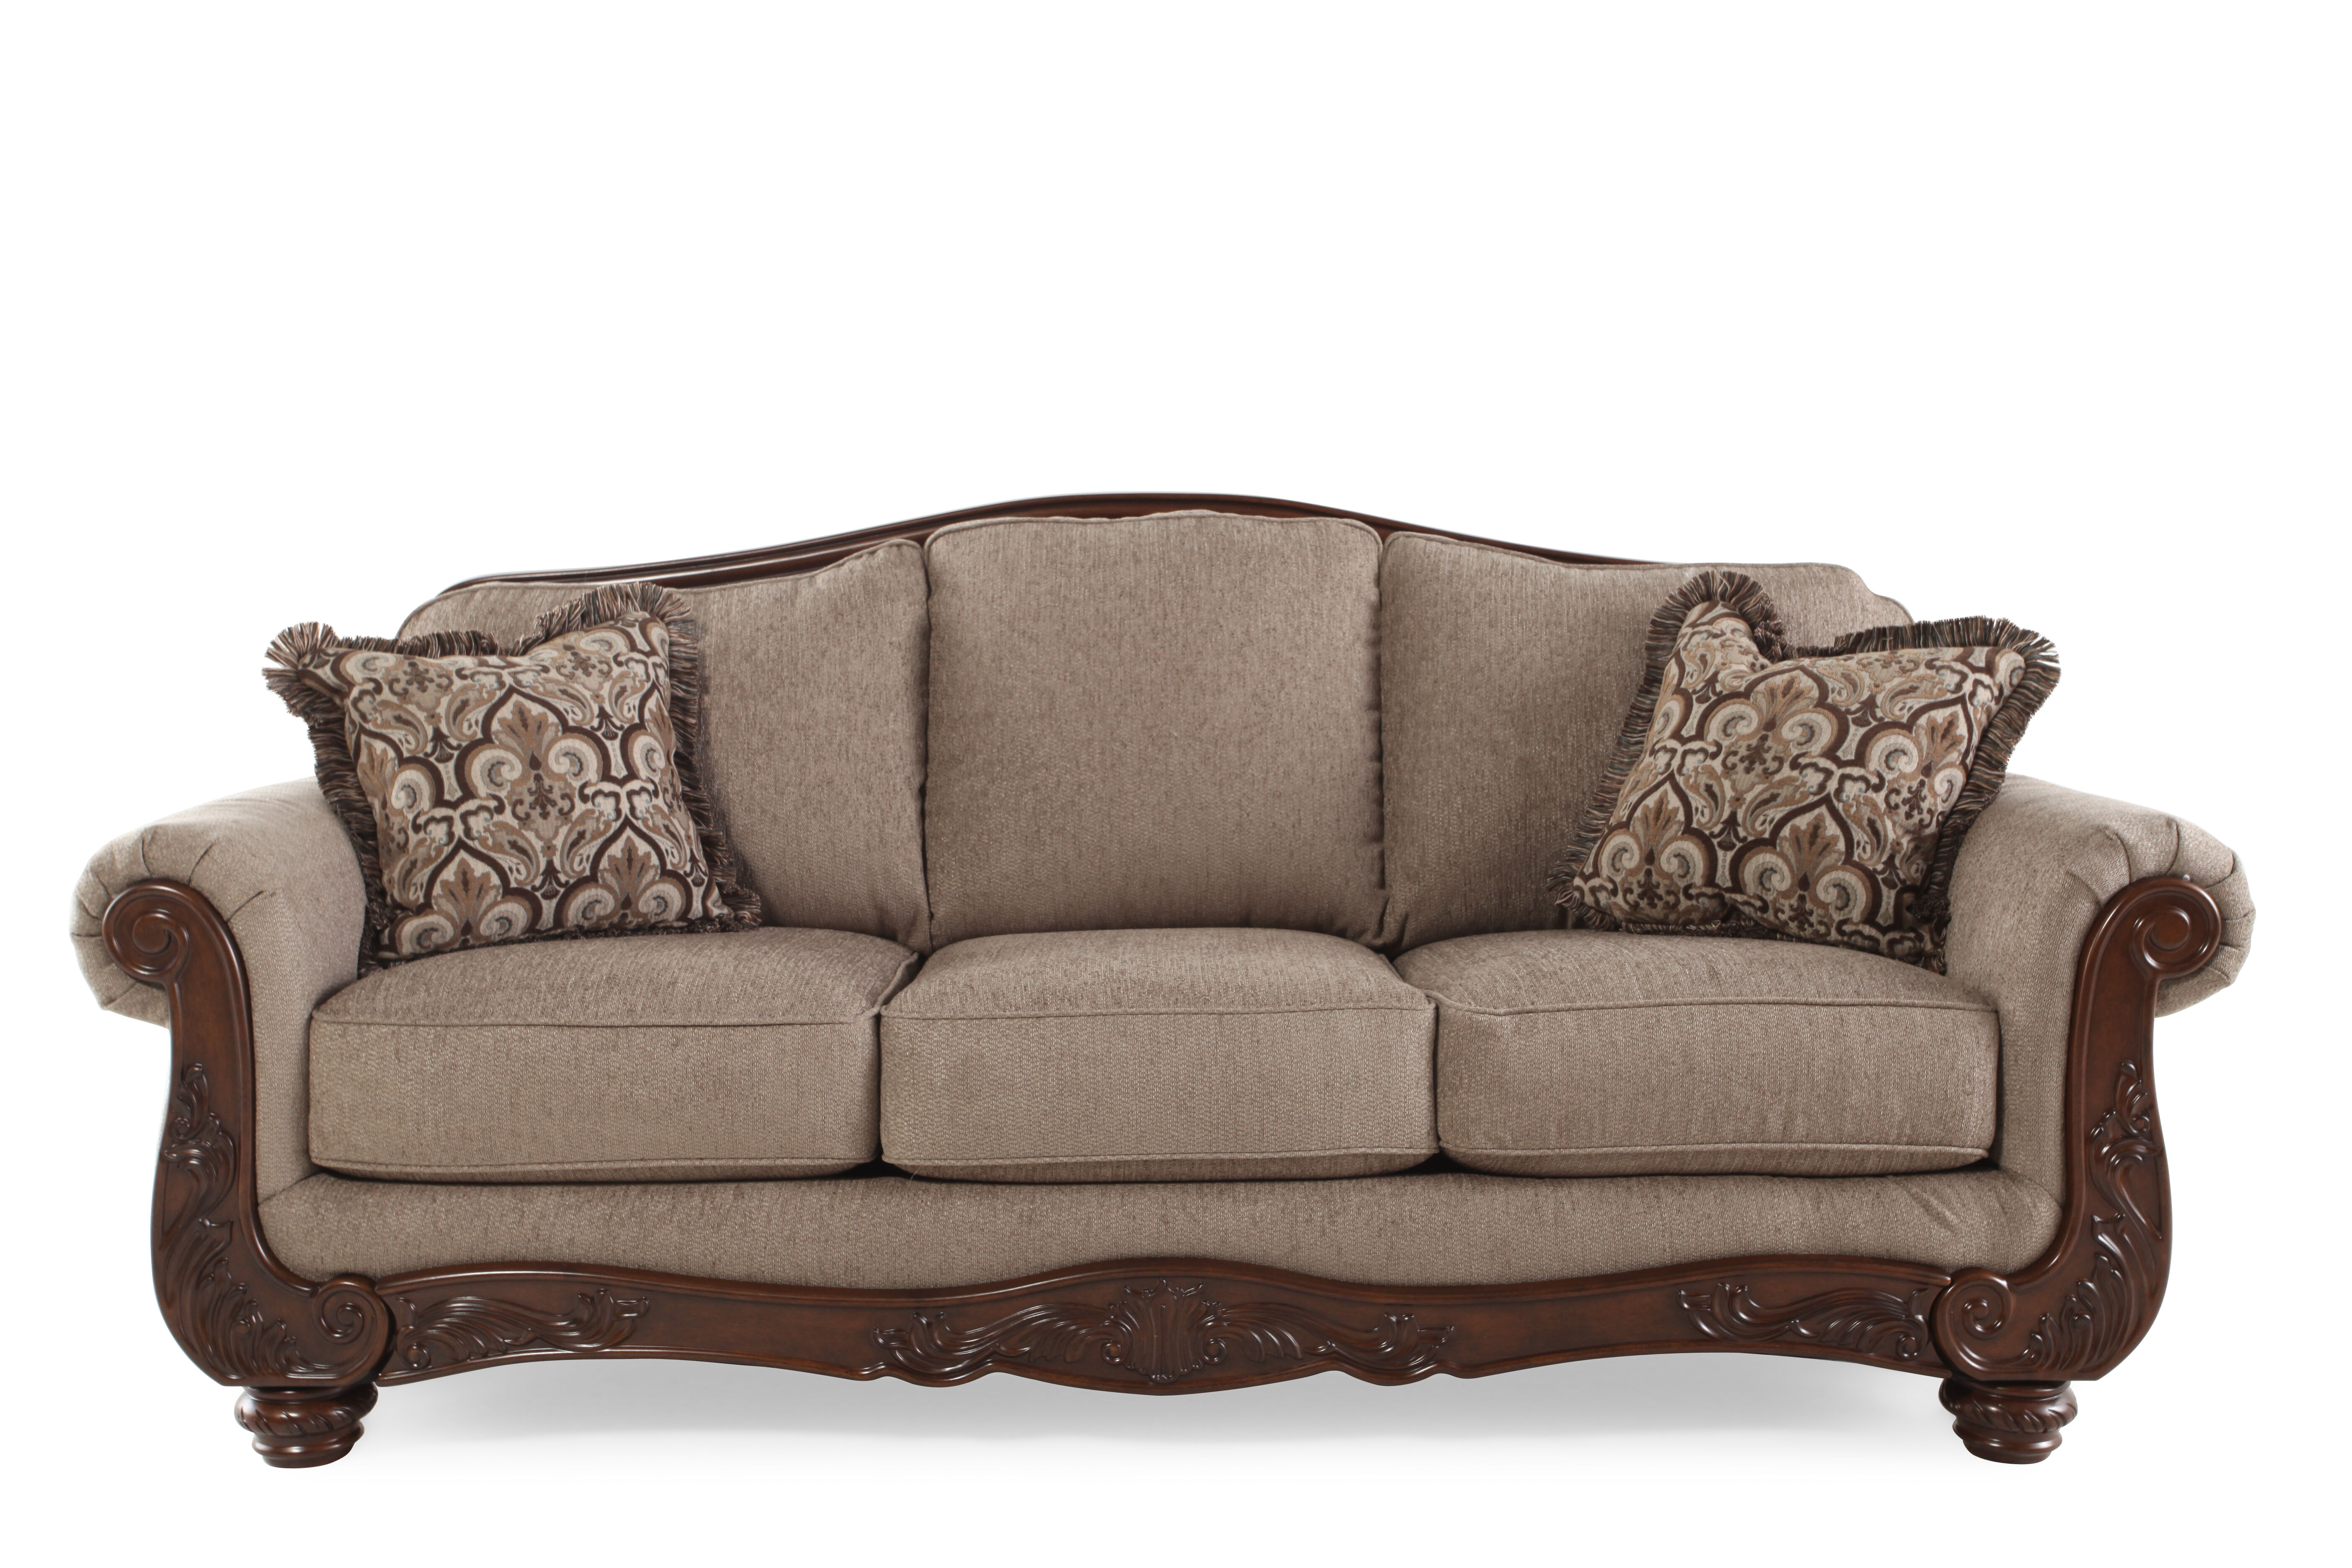 Traditional Rolled Arm 86 Sofa in Cocoa Mathis Brothers Furniture